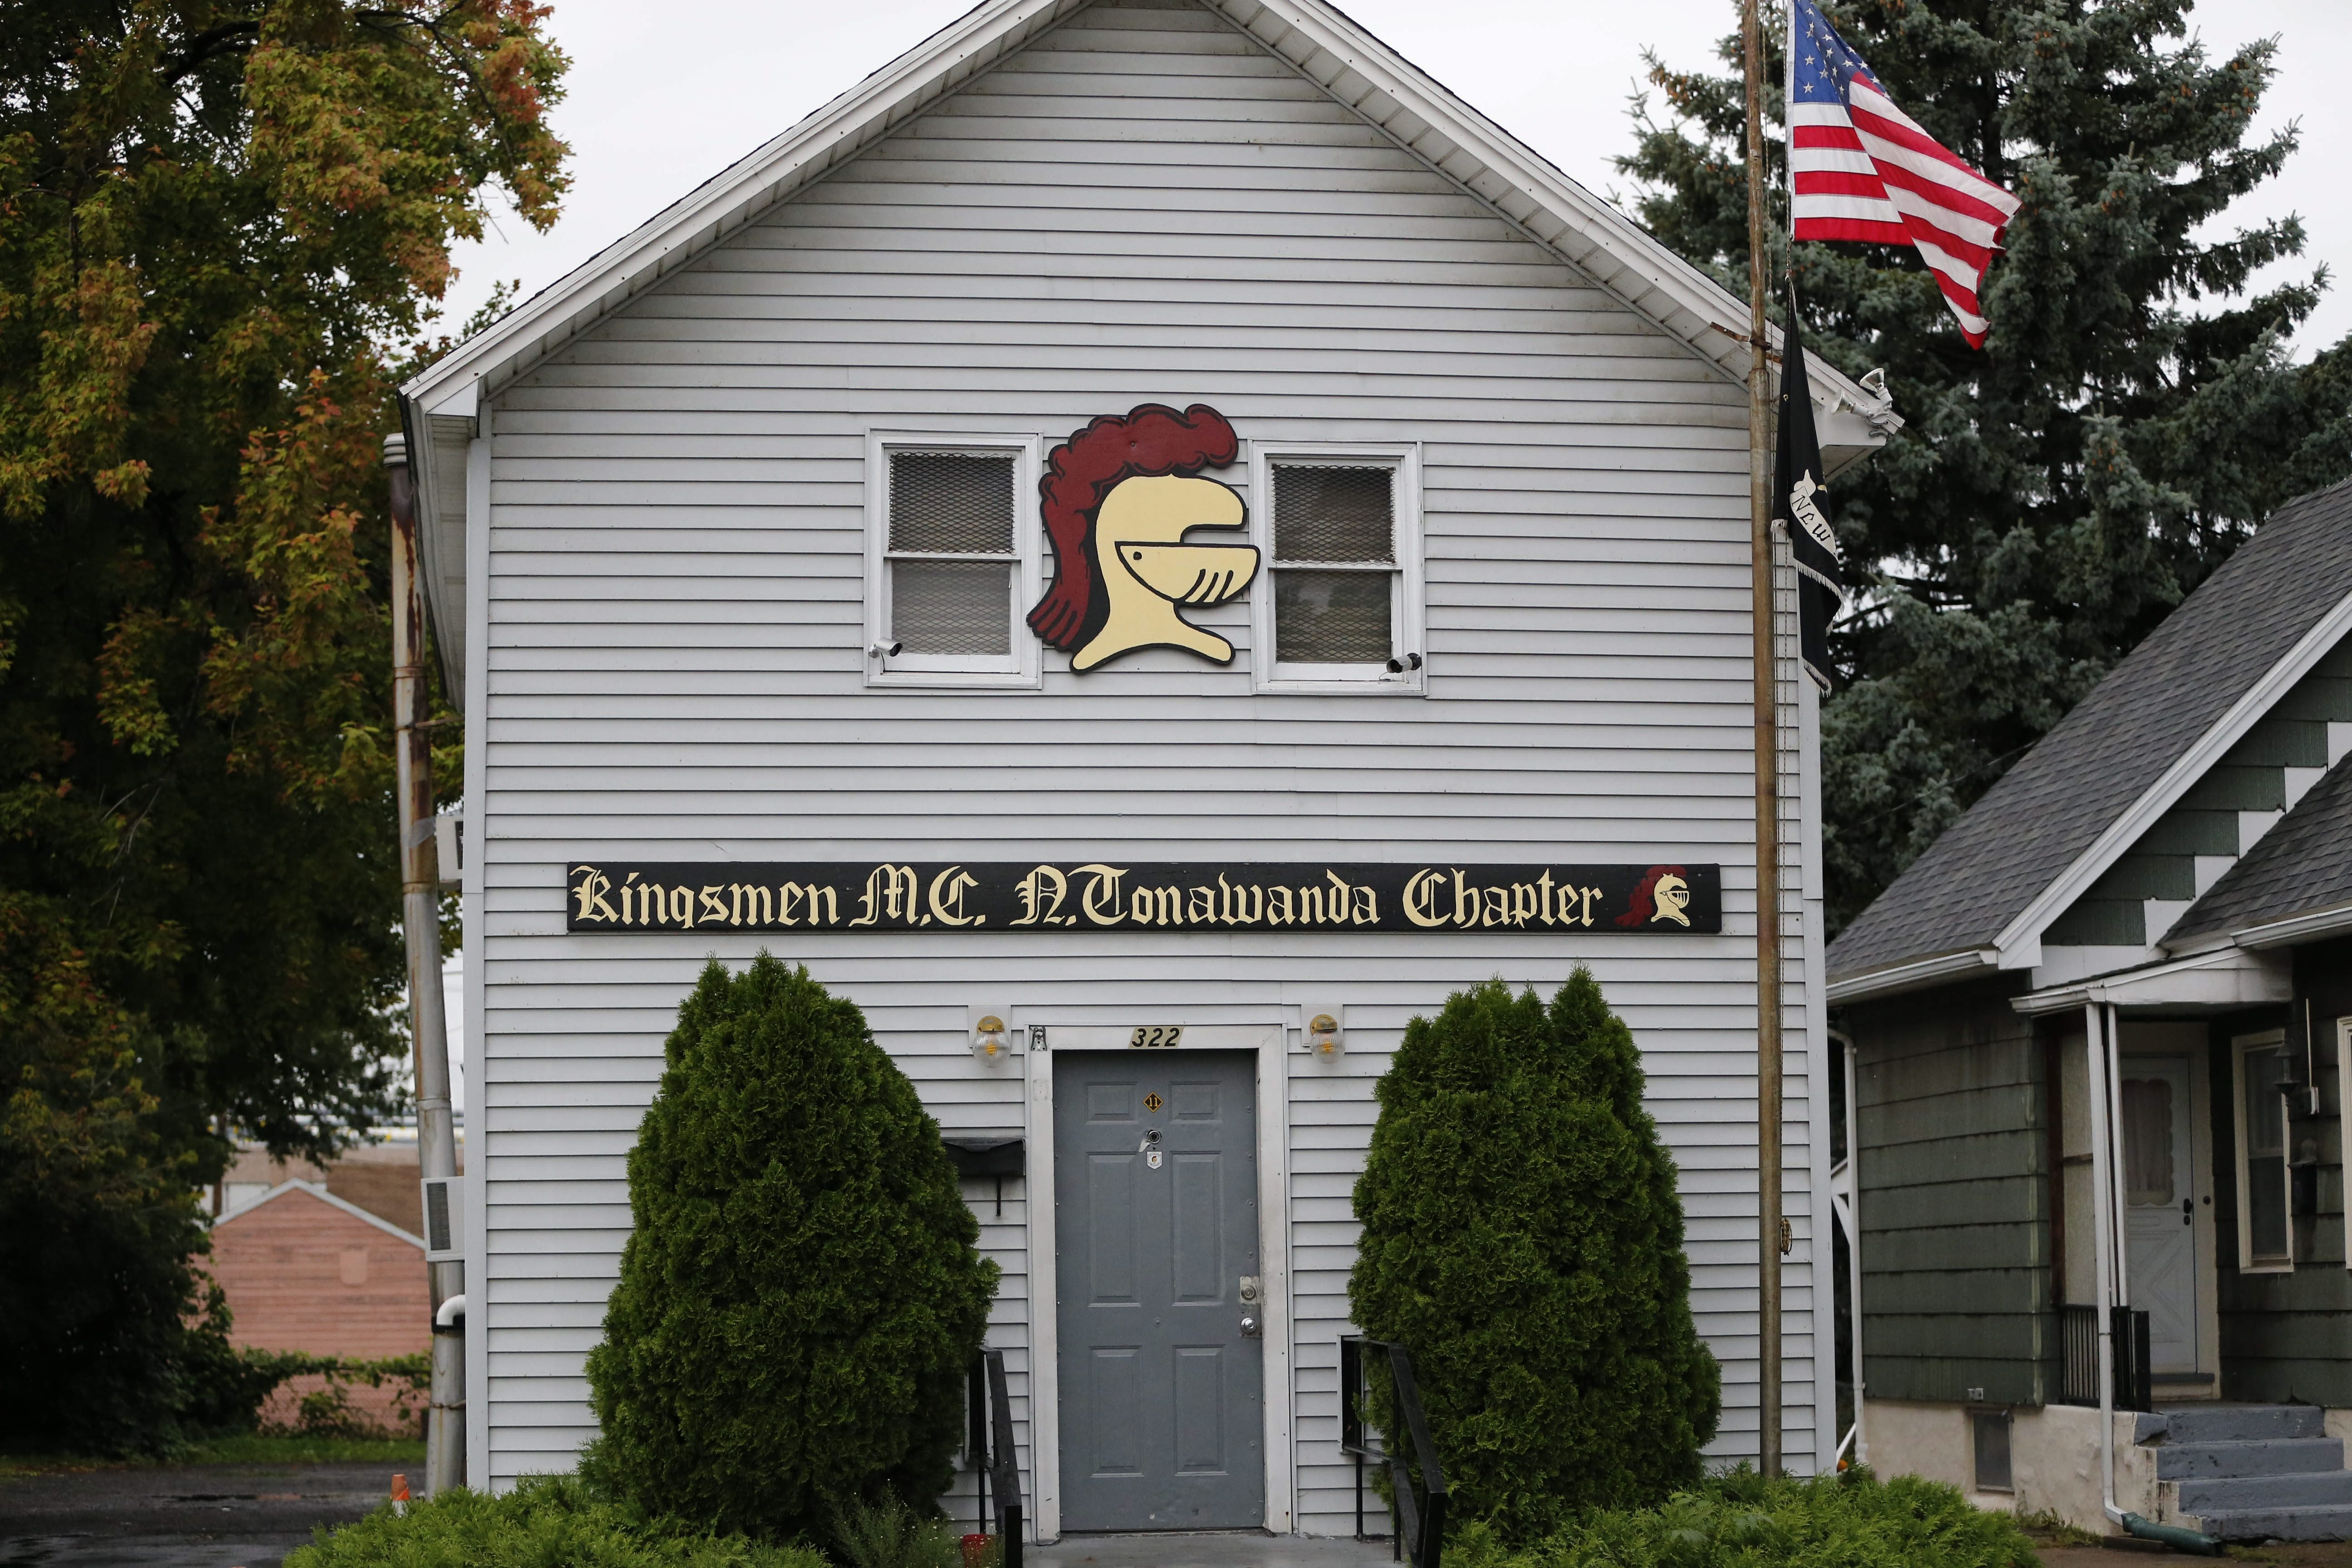 The Kingsmen Motorcycle Club on Oliver Street in North Tonawanda, where two were killed in a shooting Sept. 6, 2014. (Derek Gee/Buffalo News)